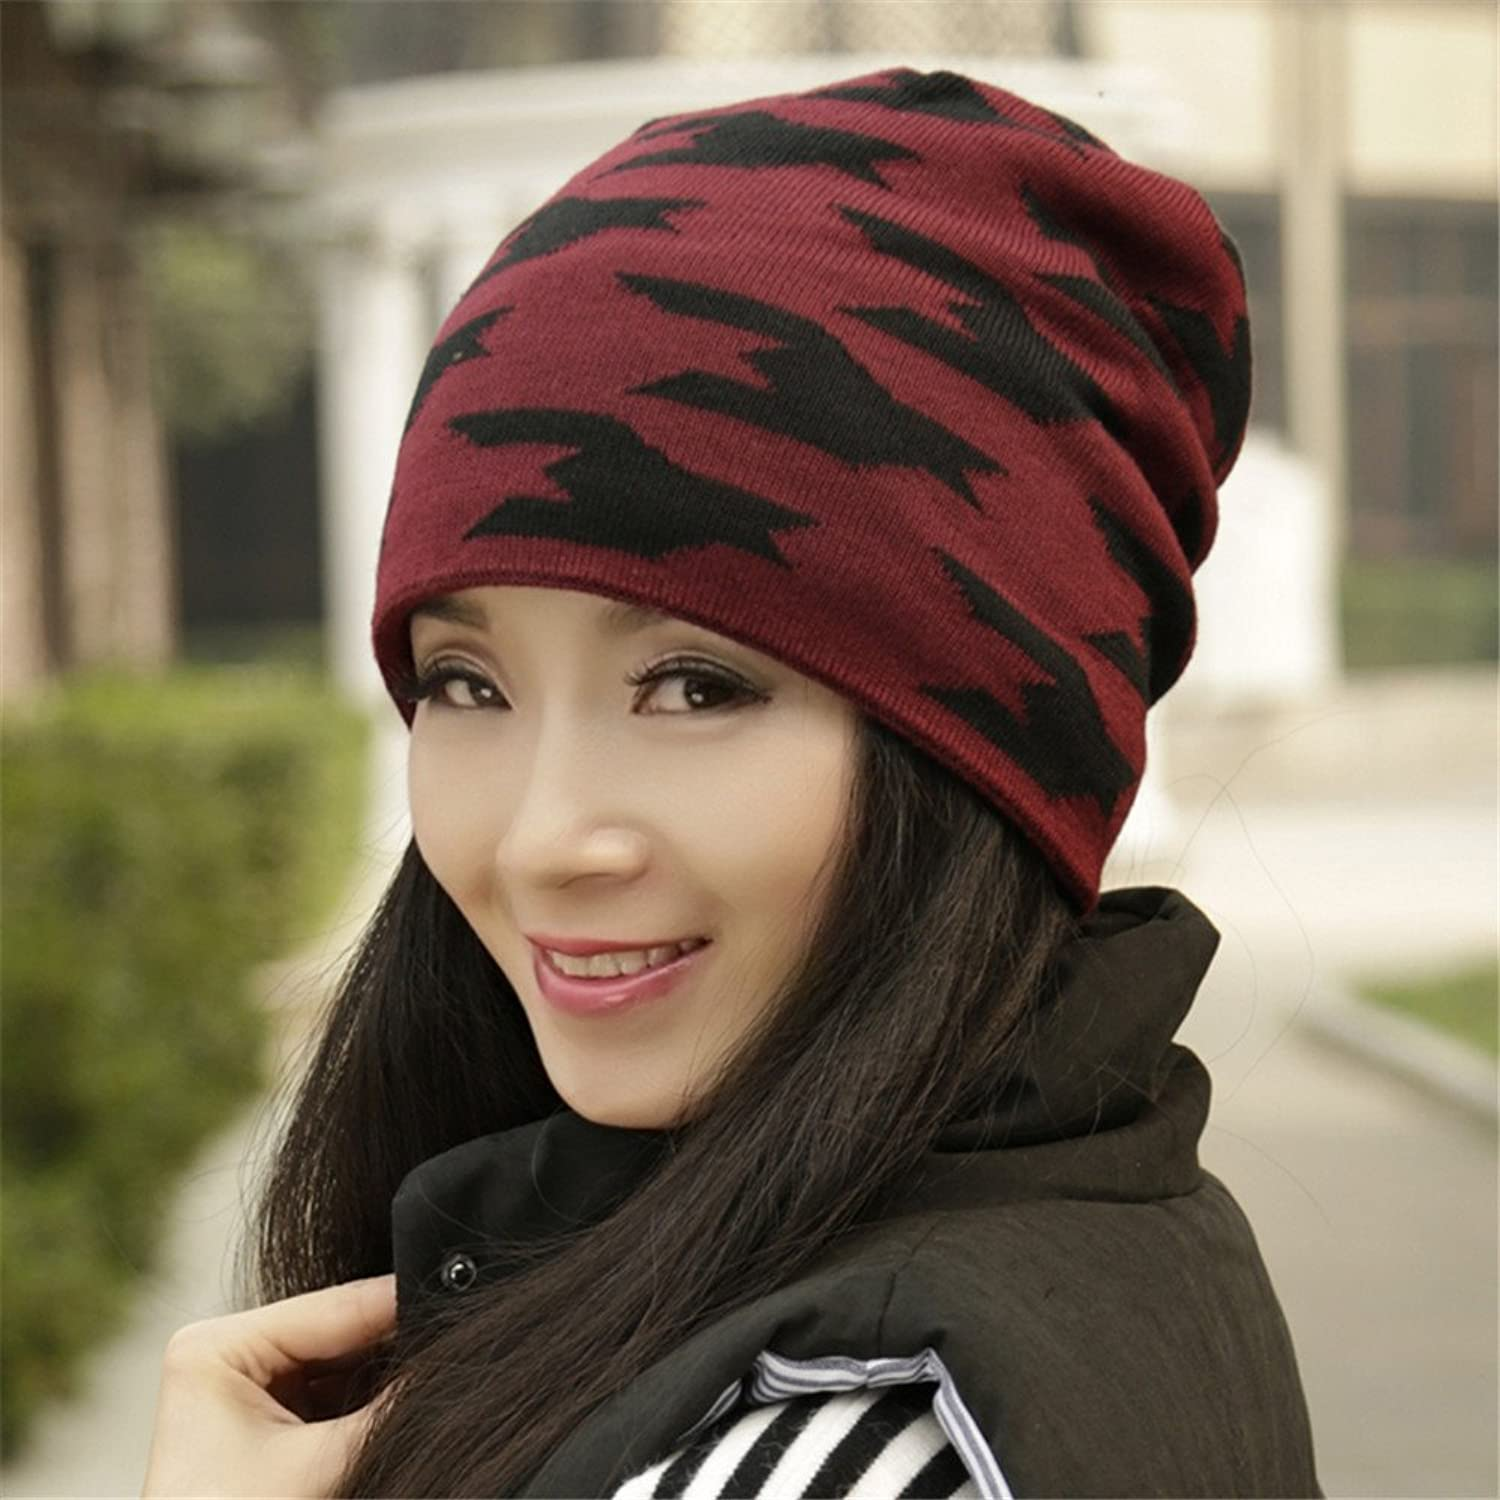 Autumn Winter hat Female Fashion Baotou Warm Knitted hat hat for Student Couples Head Circumference  56cm58cm,Lining with Velvet, Heat Preservation and Good Elasticity,Claret